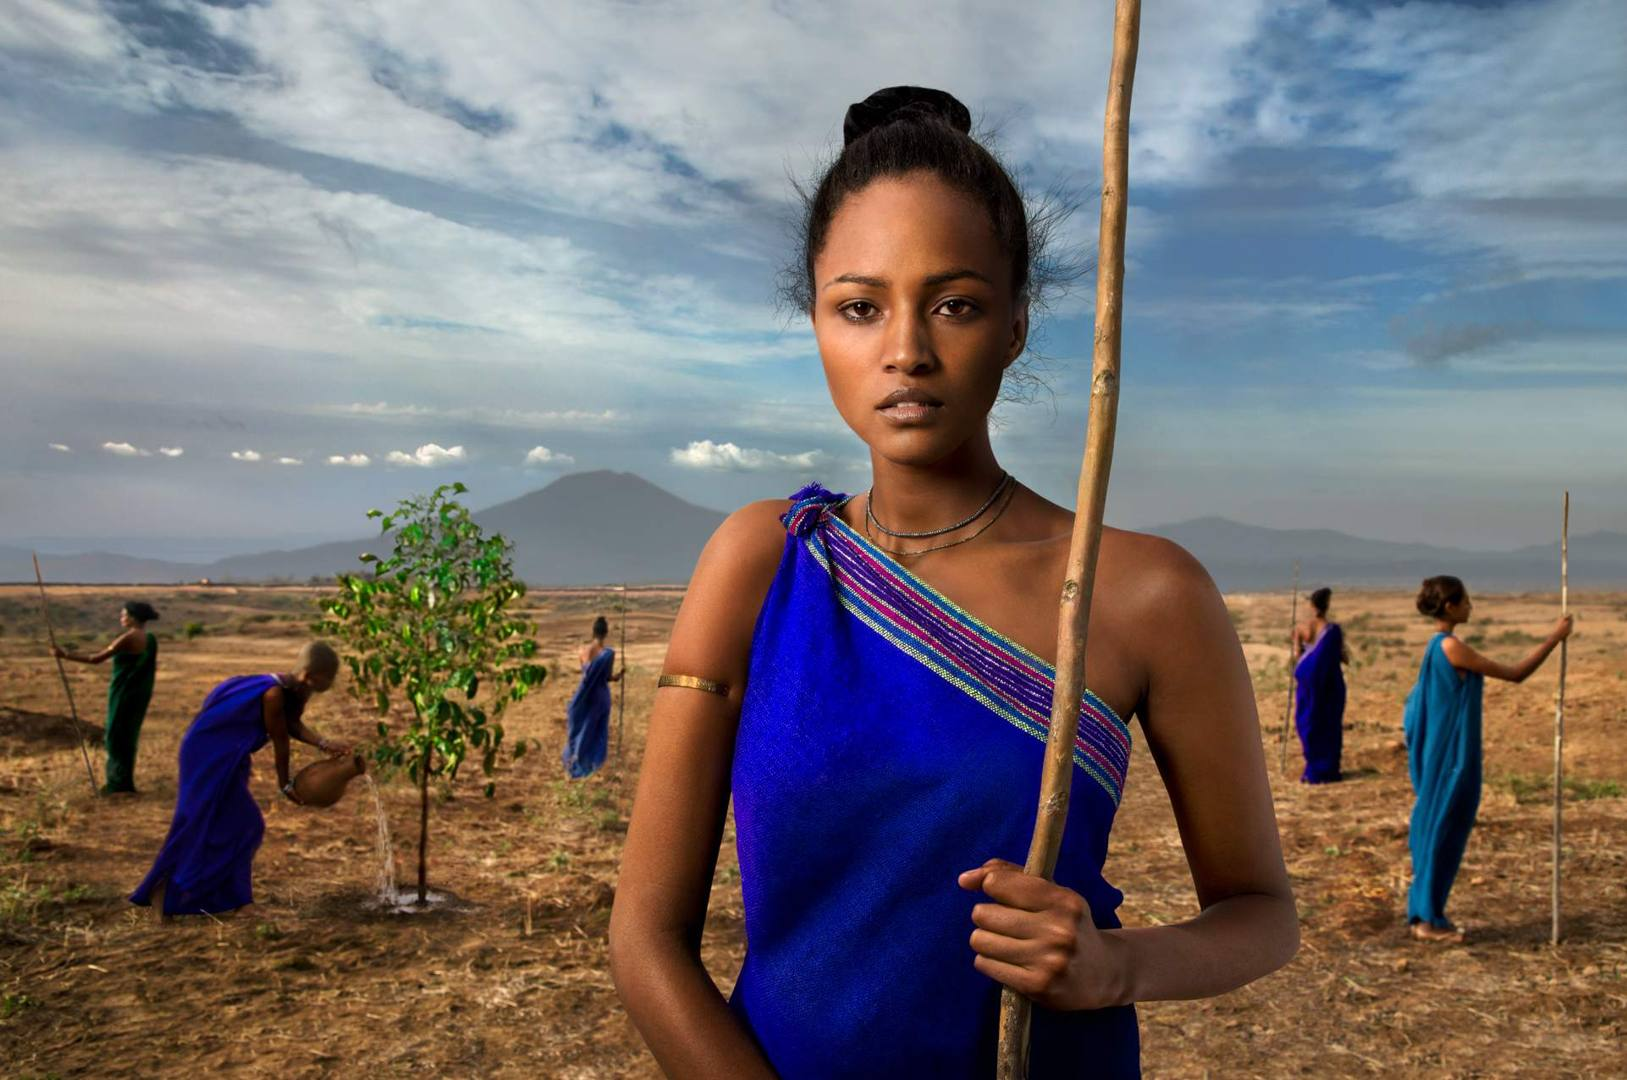 'Our Roots' - Ethiopian women from the Kafa region defend and preserve the coffee which symbolises the richness of this land